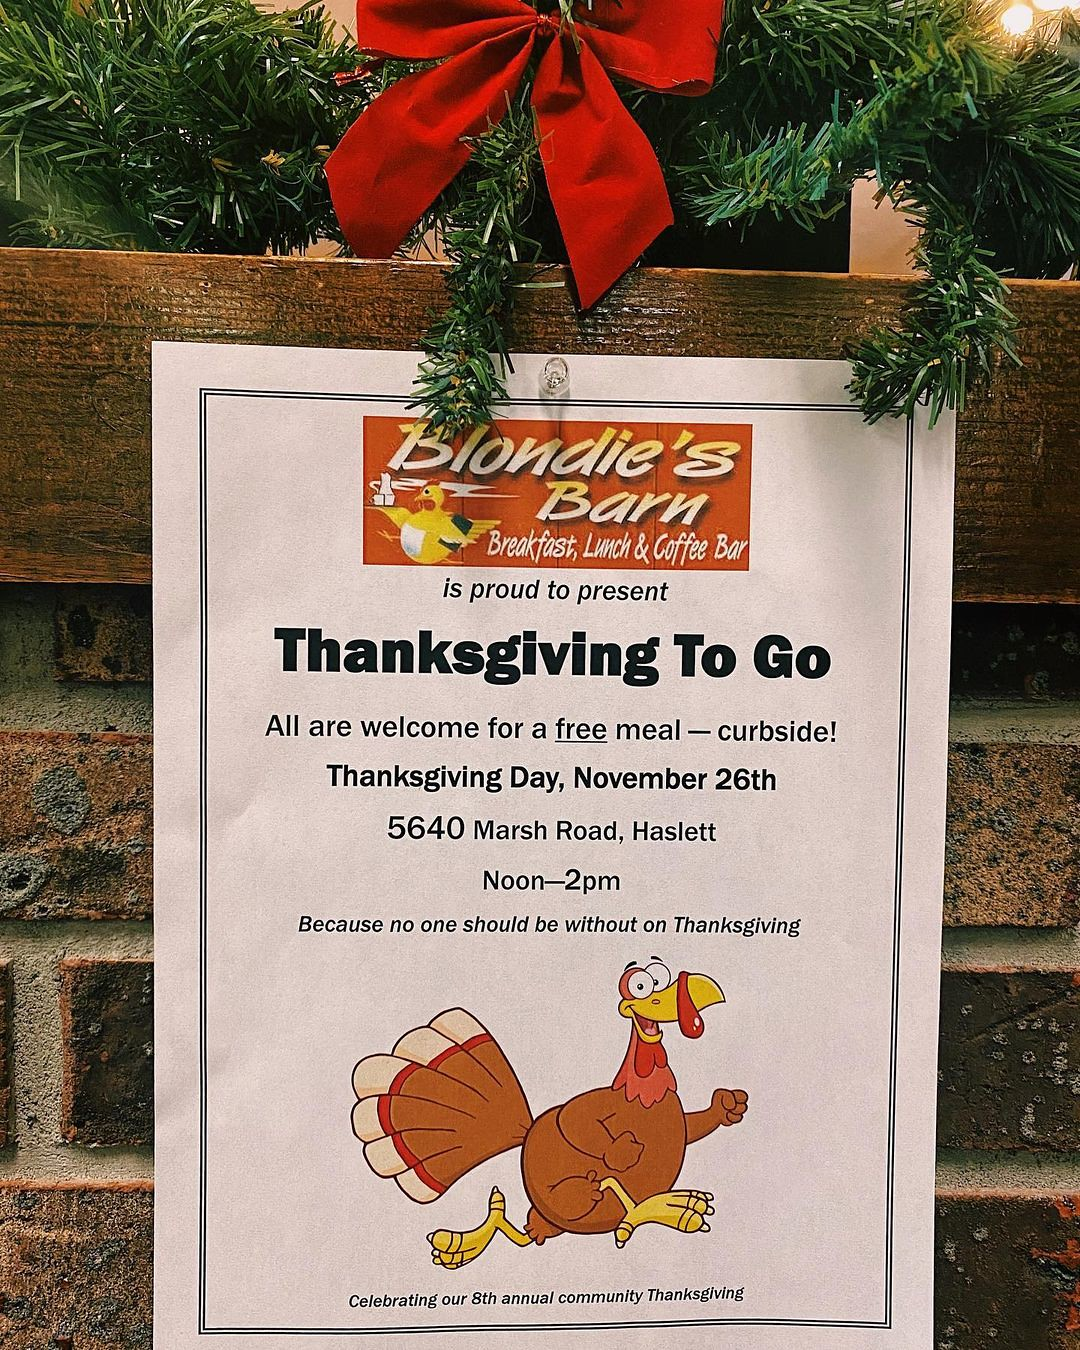 Blondie's Barn 8th Annual Thanksgiving Dinner Will Be To-Go This Year